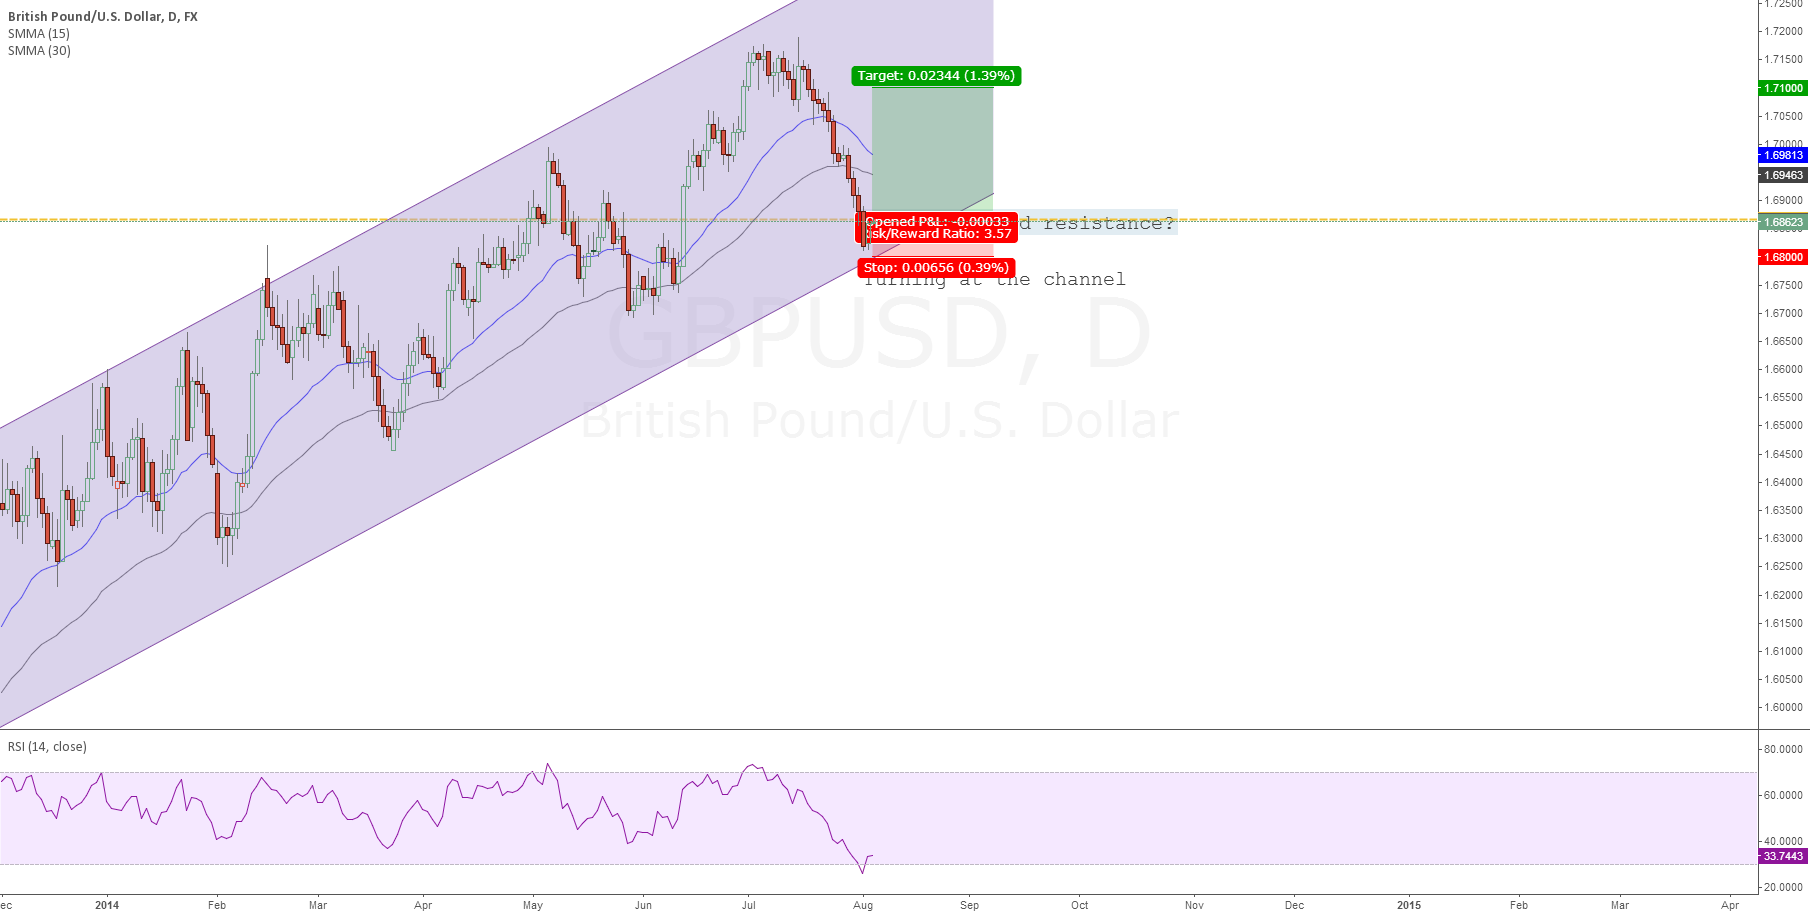 The Cable Turns at the Channel: A decisive moment for GBPUSD